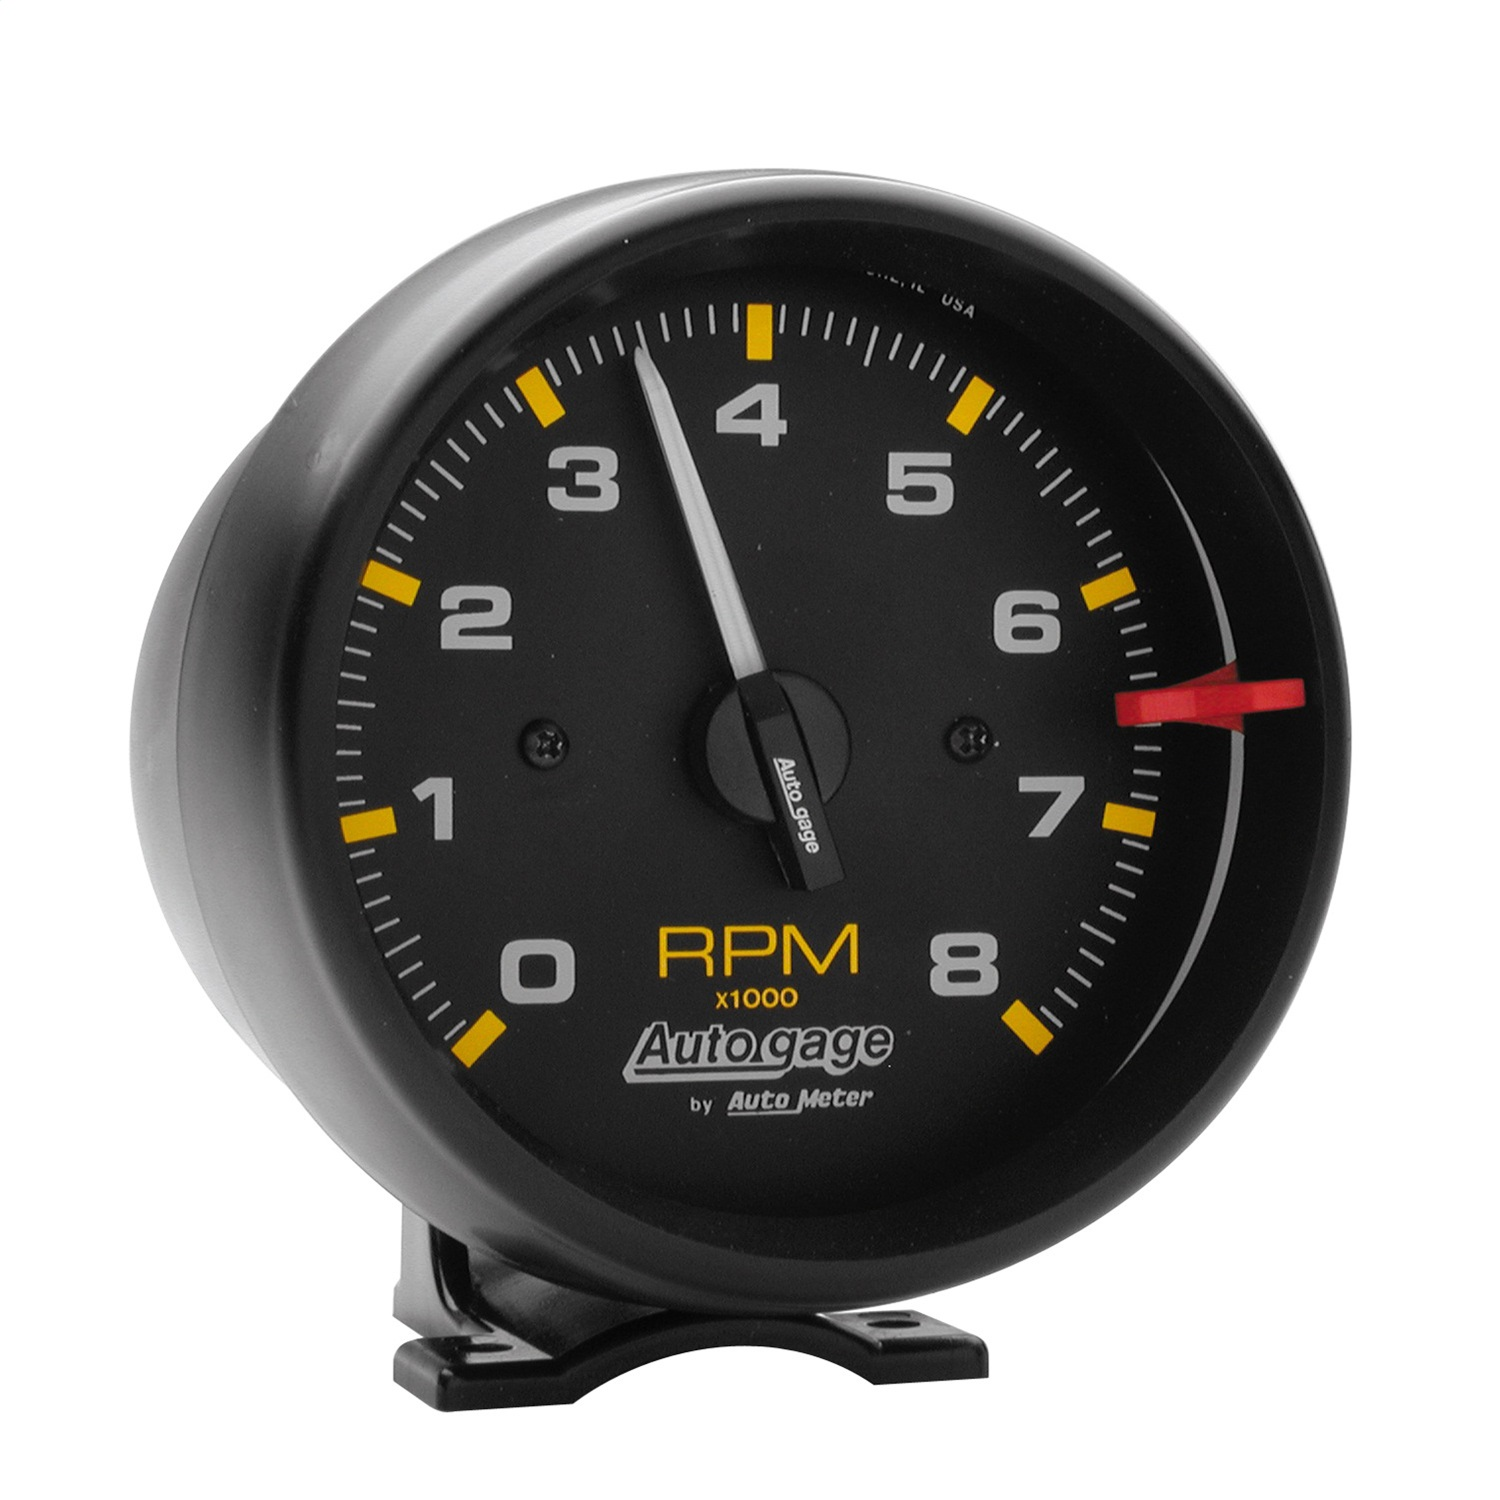 hight resolution of gauge tachometer 3 3 4in 8k rpm pedestal blk dial blk case autogage